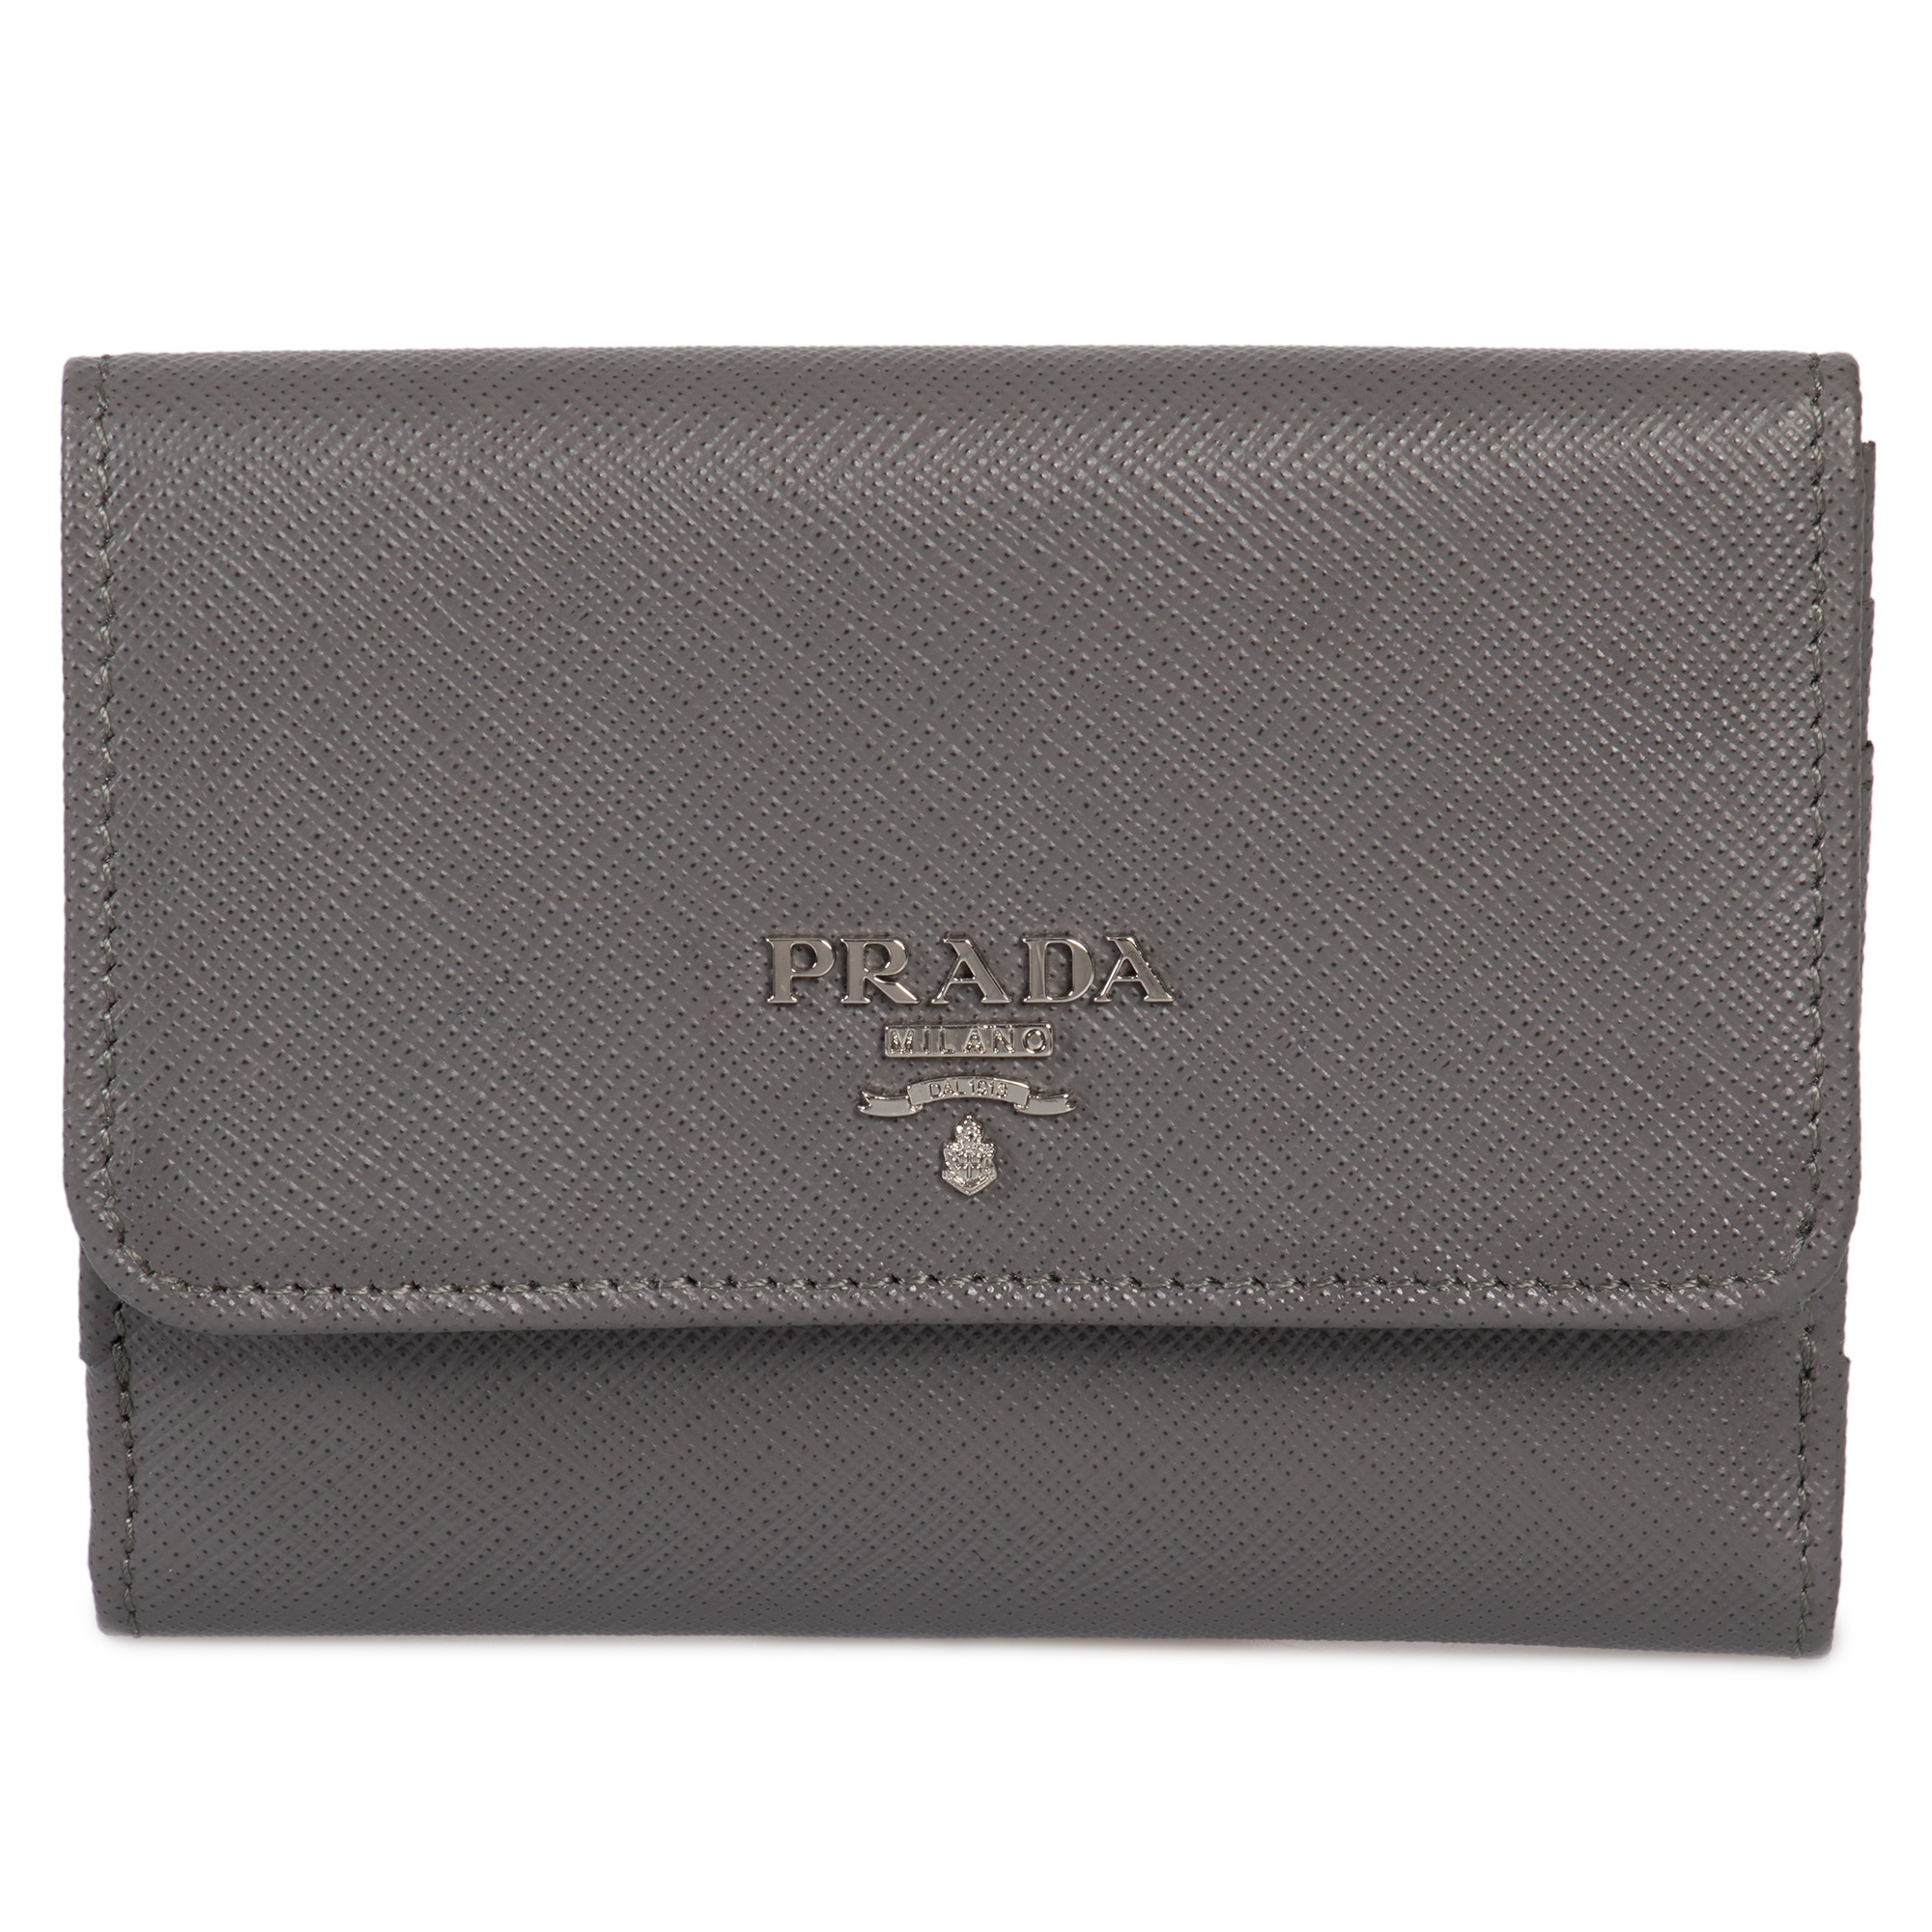 e9a91628fa0d71 PRADA Marble Saffiano Leather Flap Wallet 1mh523 Qwa F0k44 for sale ...